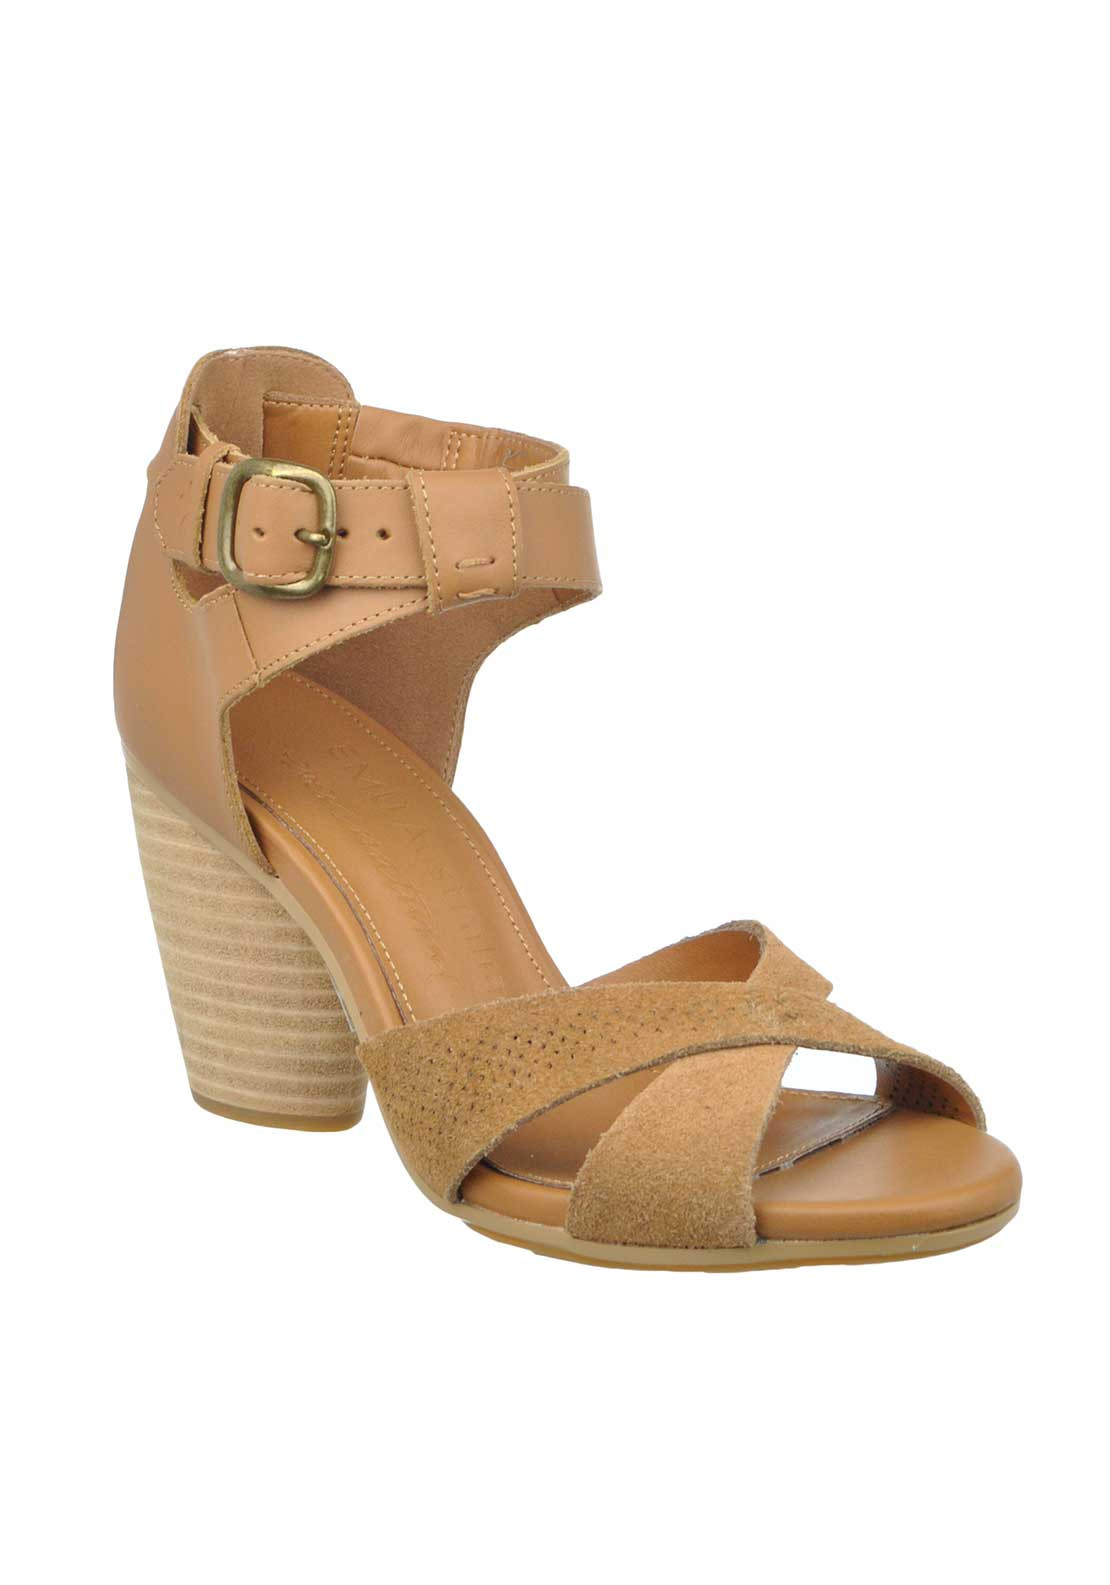 EMU Australia Tweed Leather Heeled Sandals, Tan